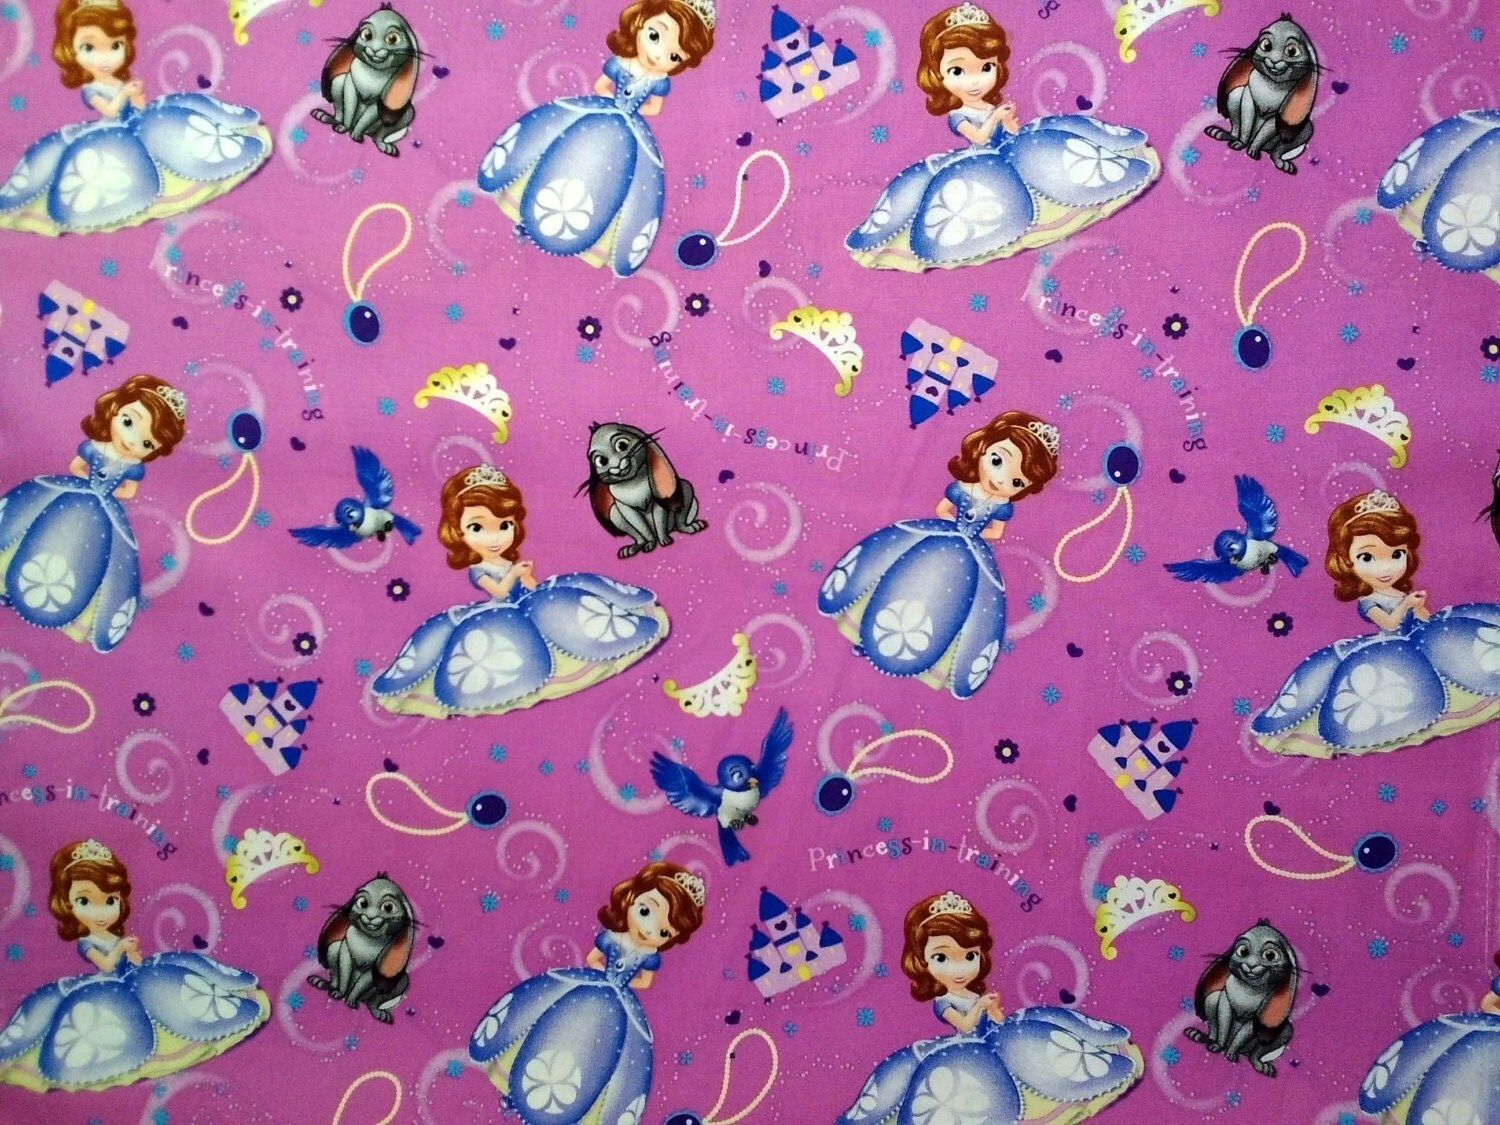 Sofia And Friends Fabric From Countrysidefabric On Etsy Studio